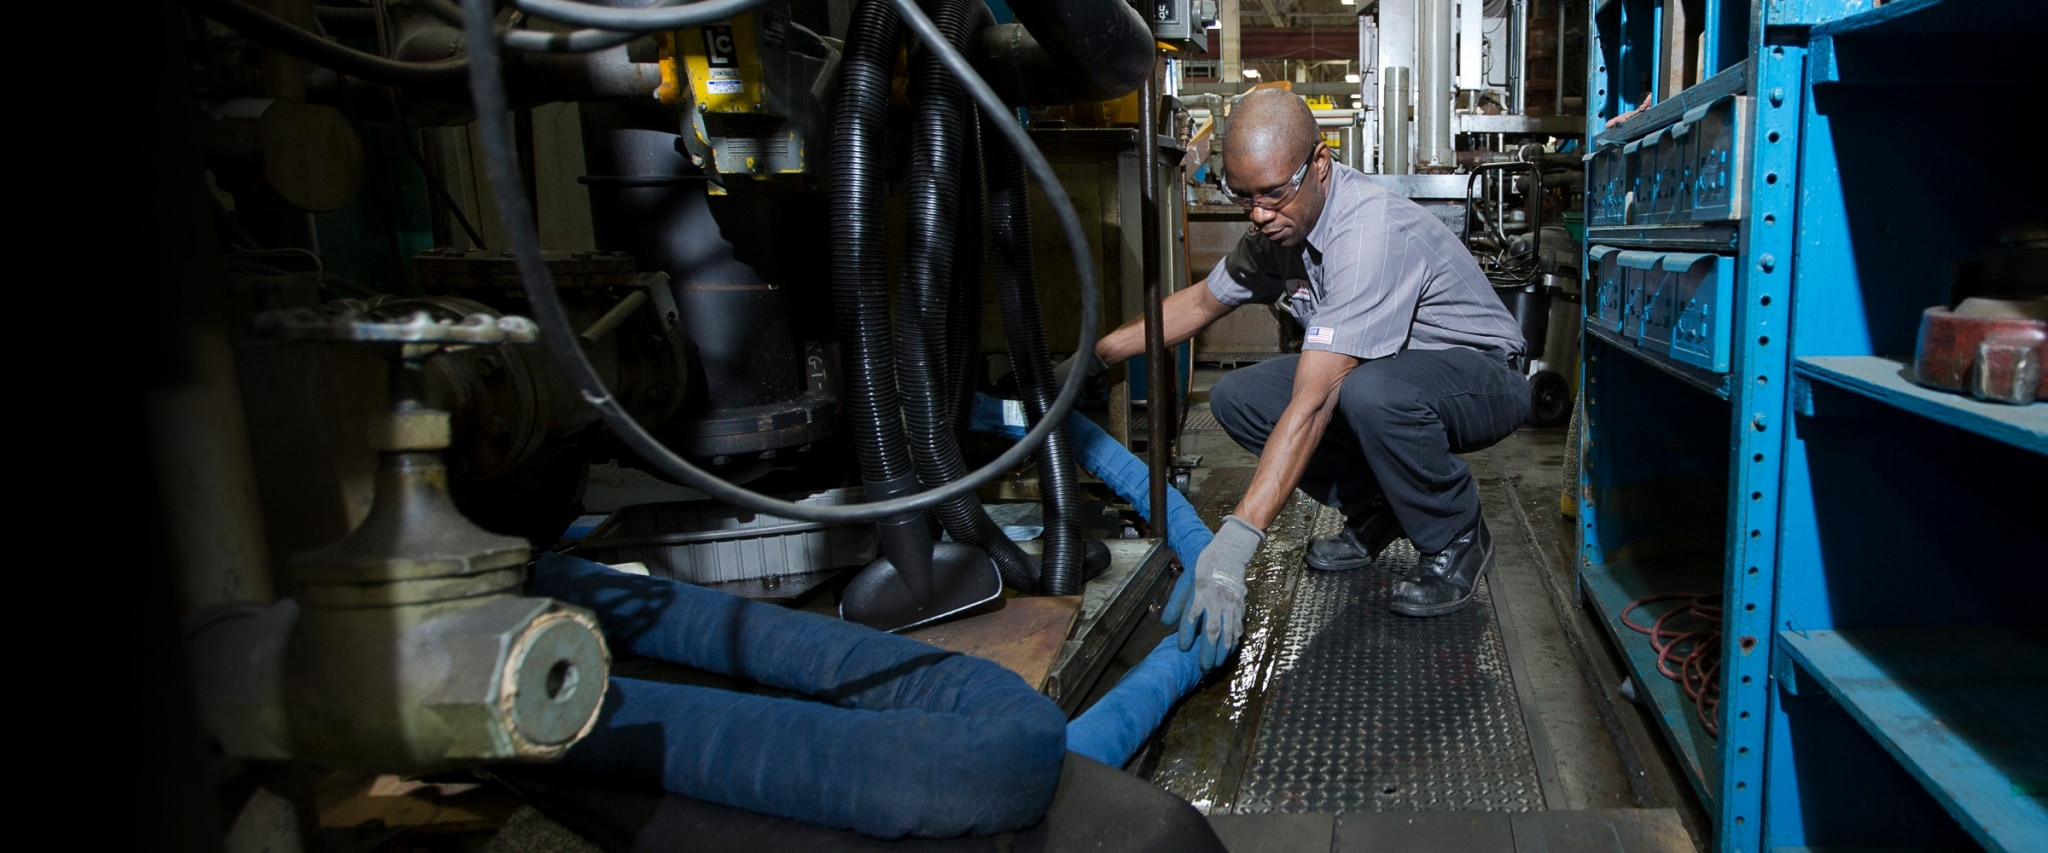 SorbIts reusable oil absorbent socks being placed under a machine to soak up leaking oil